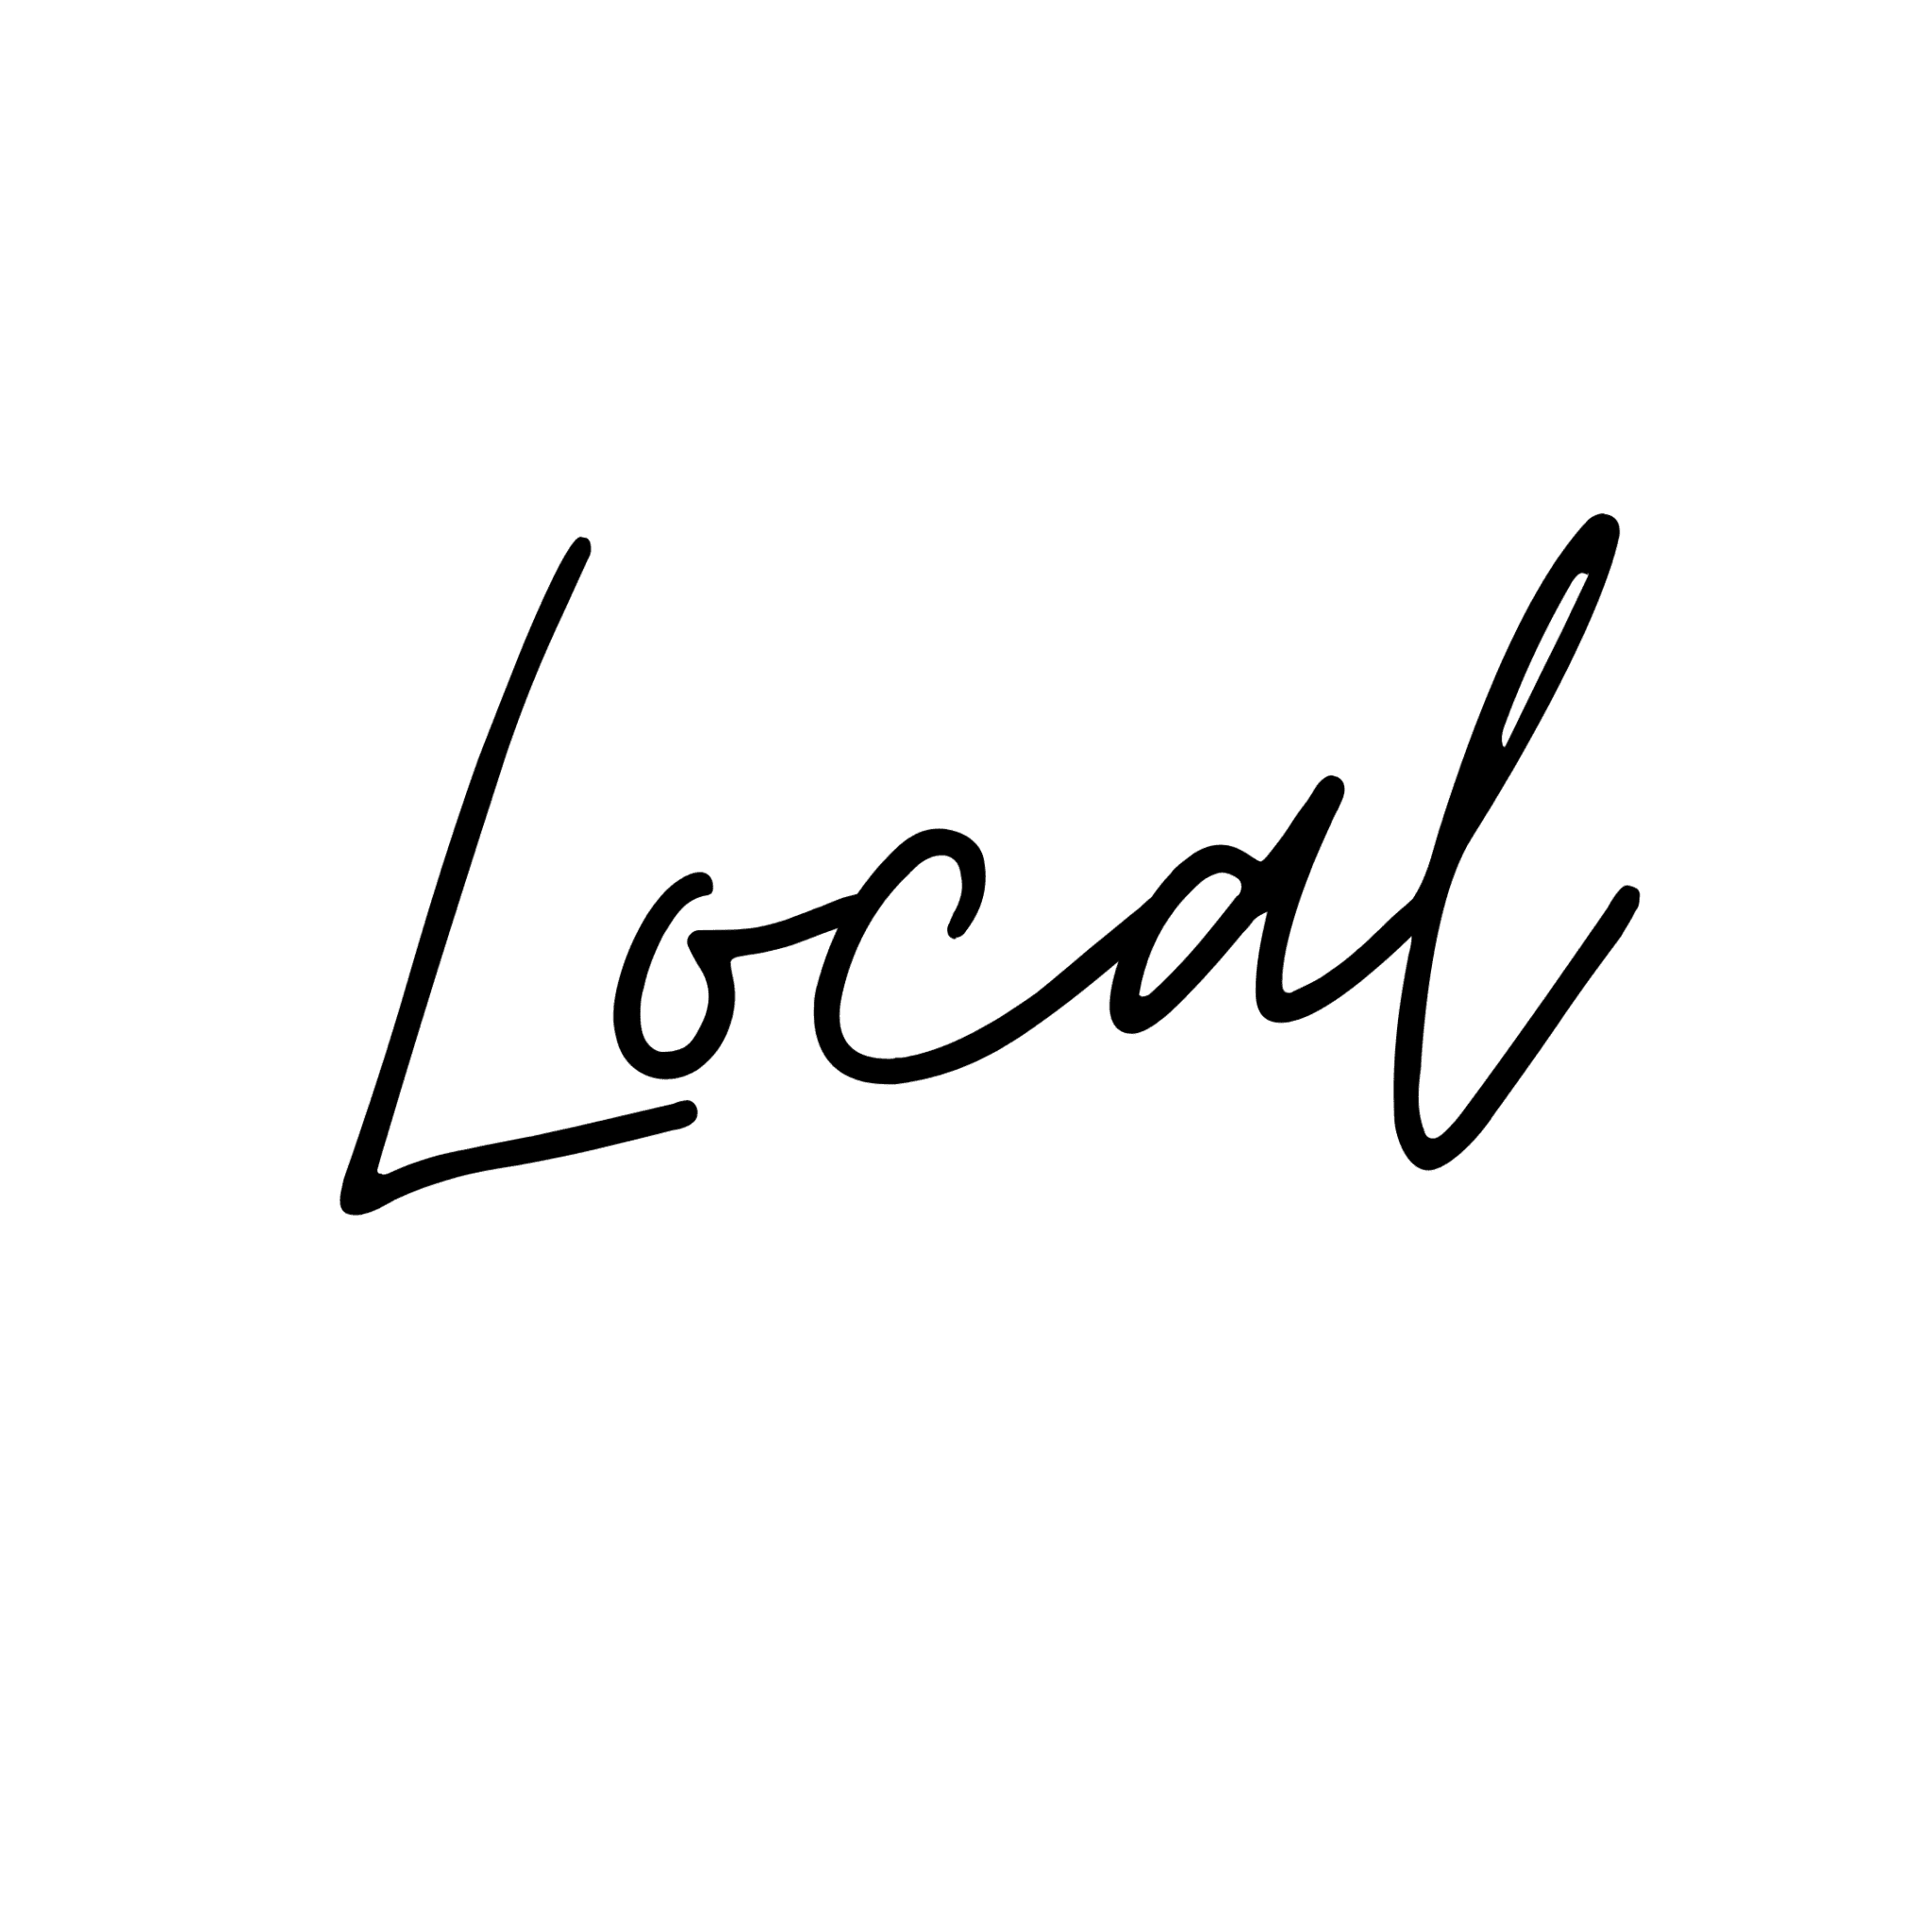 Local Image Co